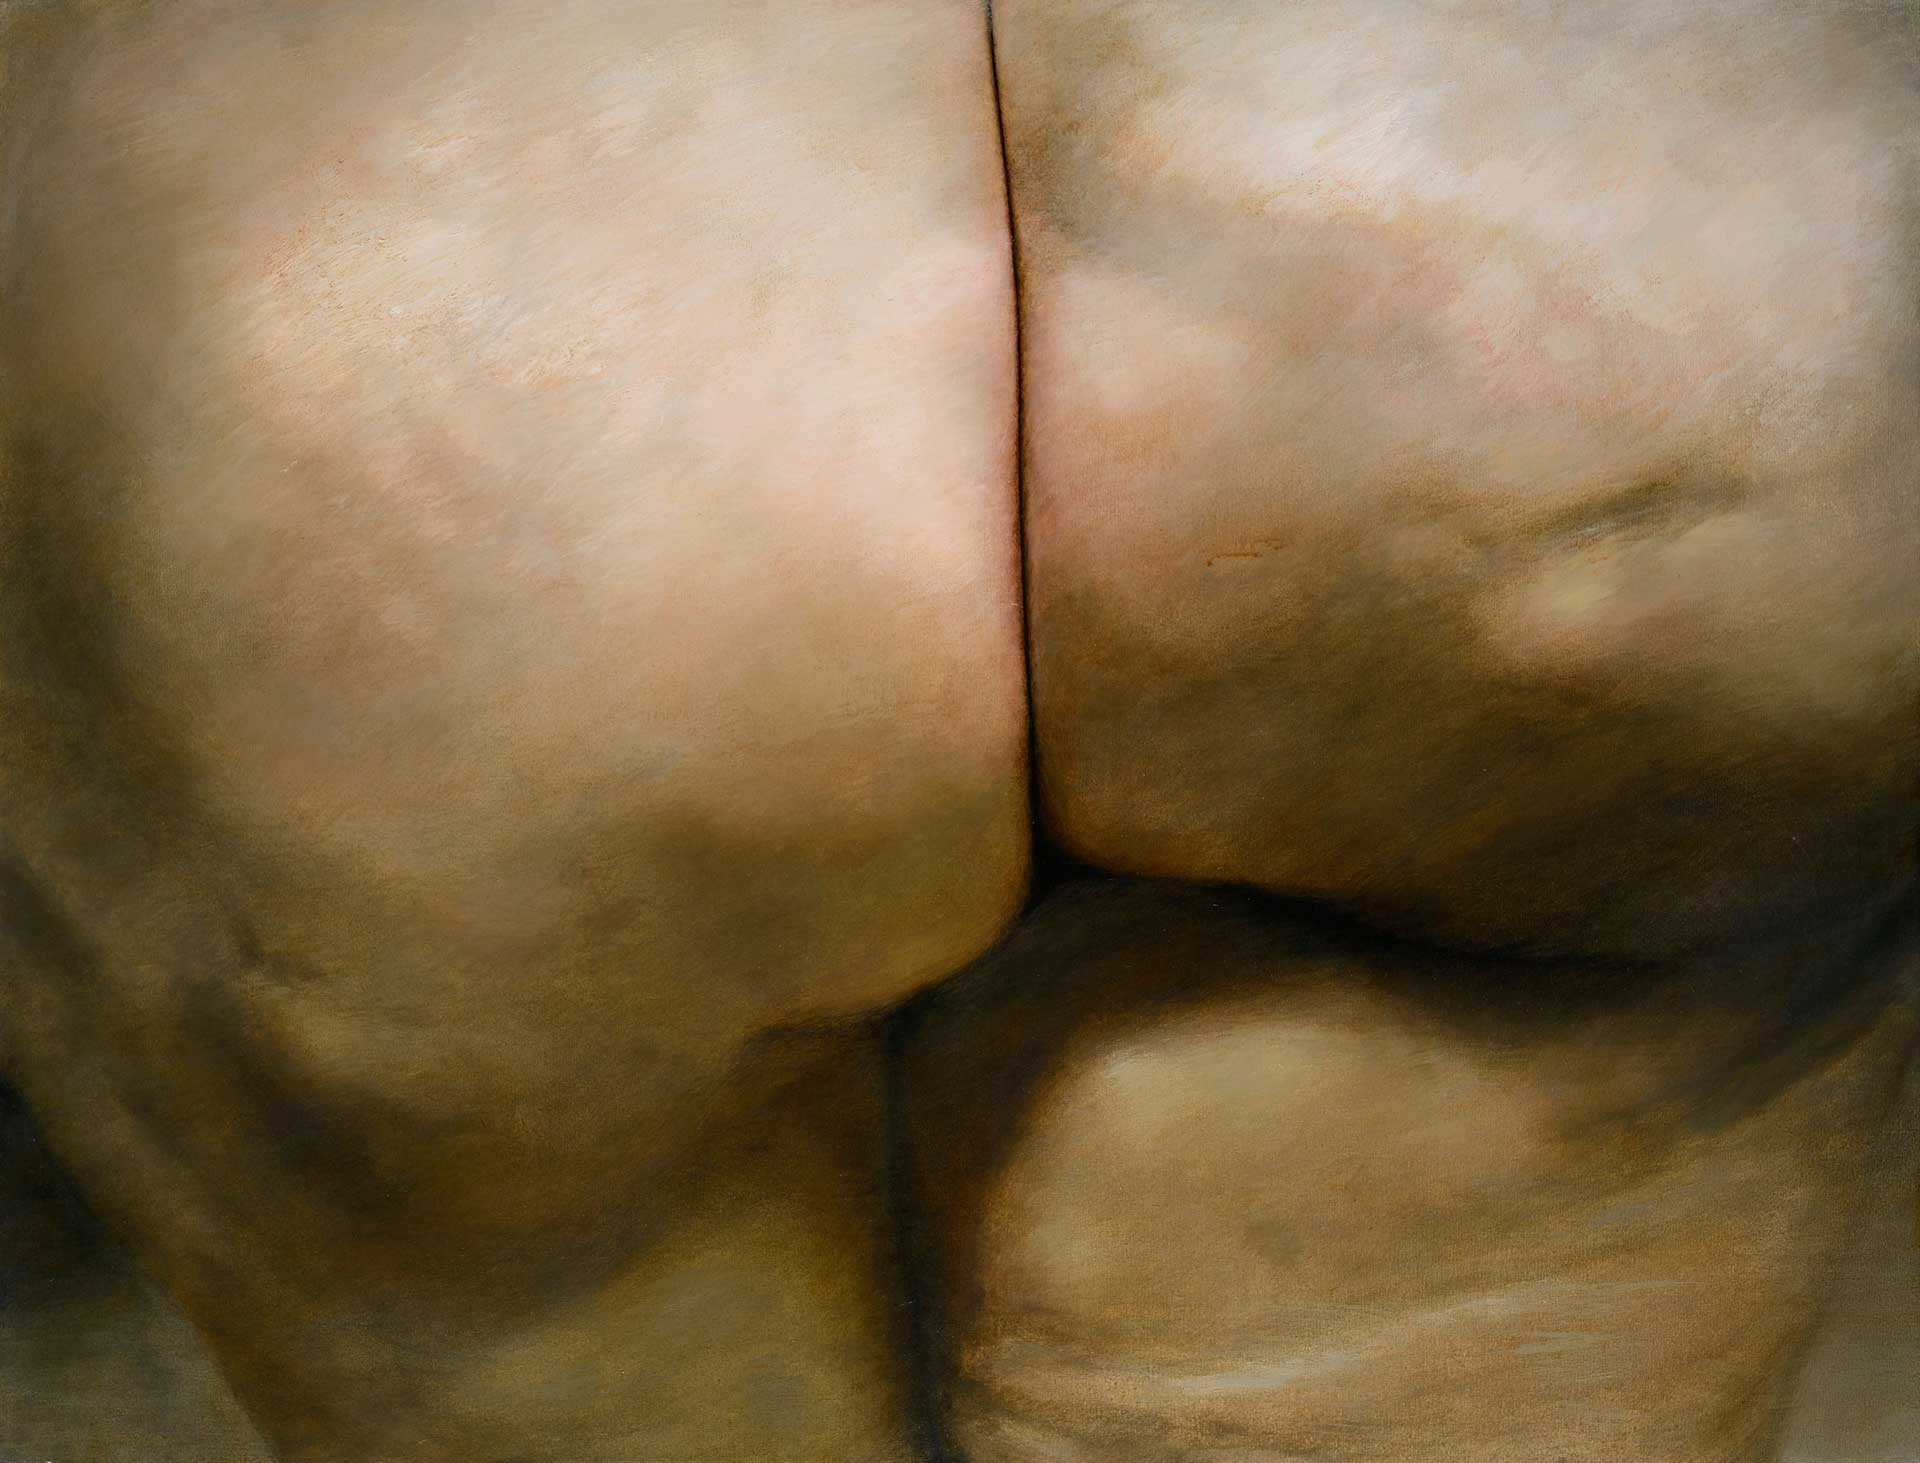 Torso of the picture - Back view, 2006